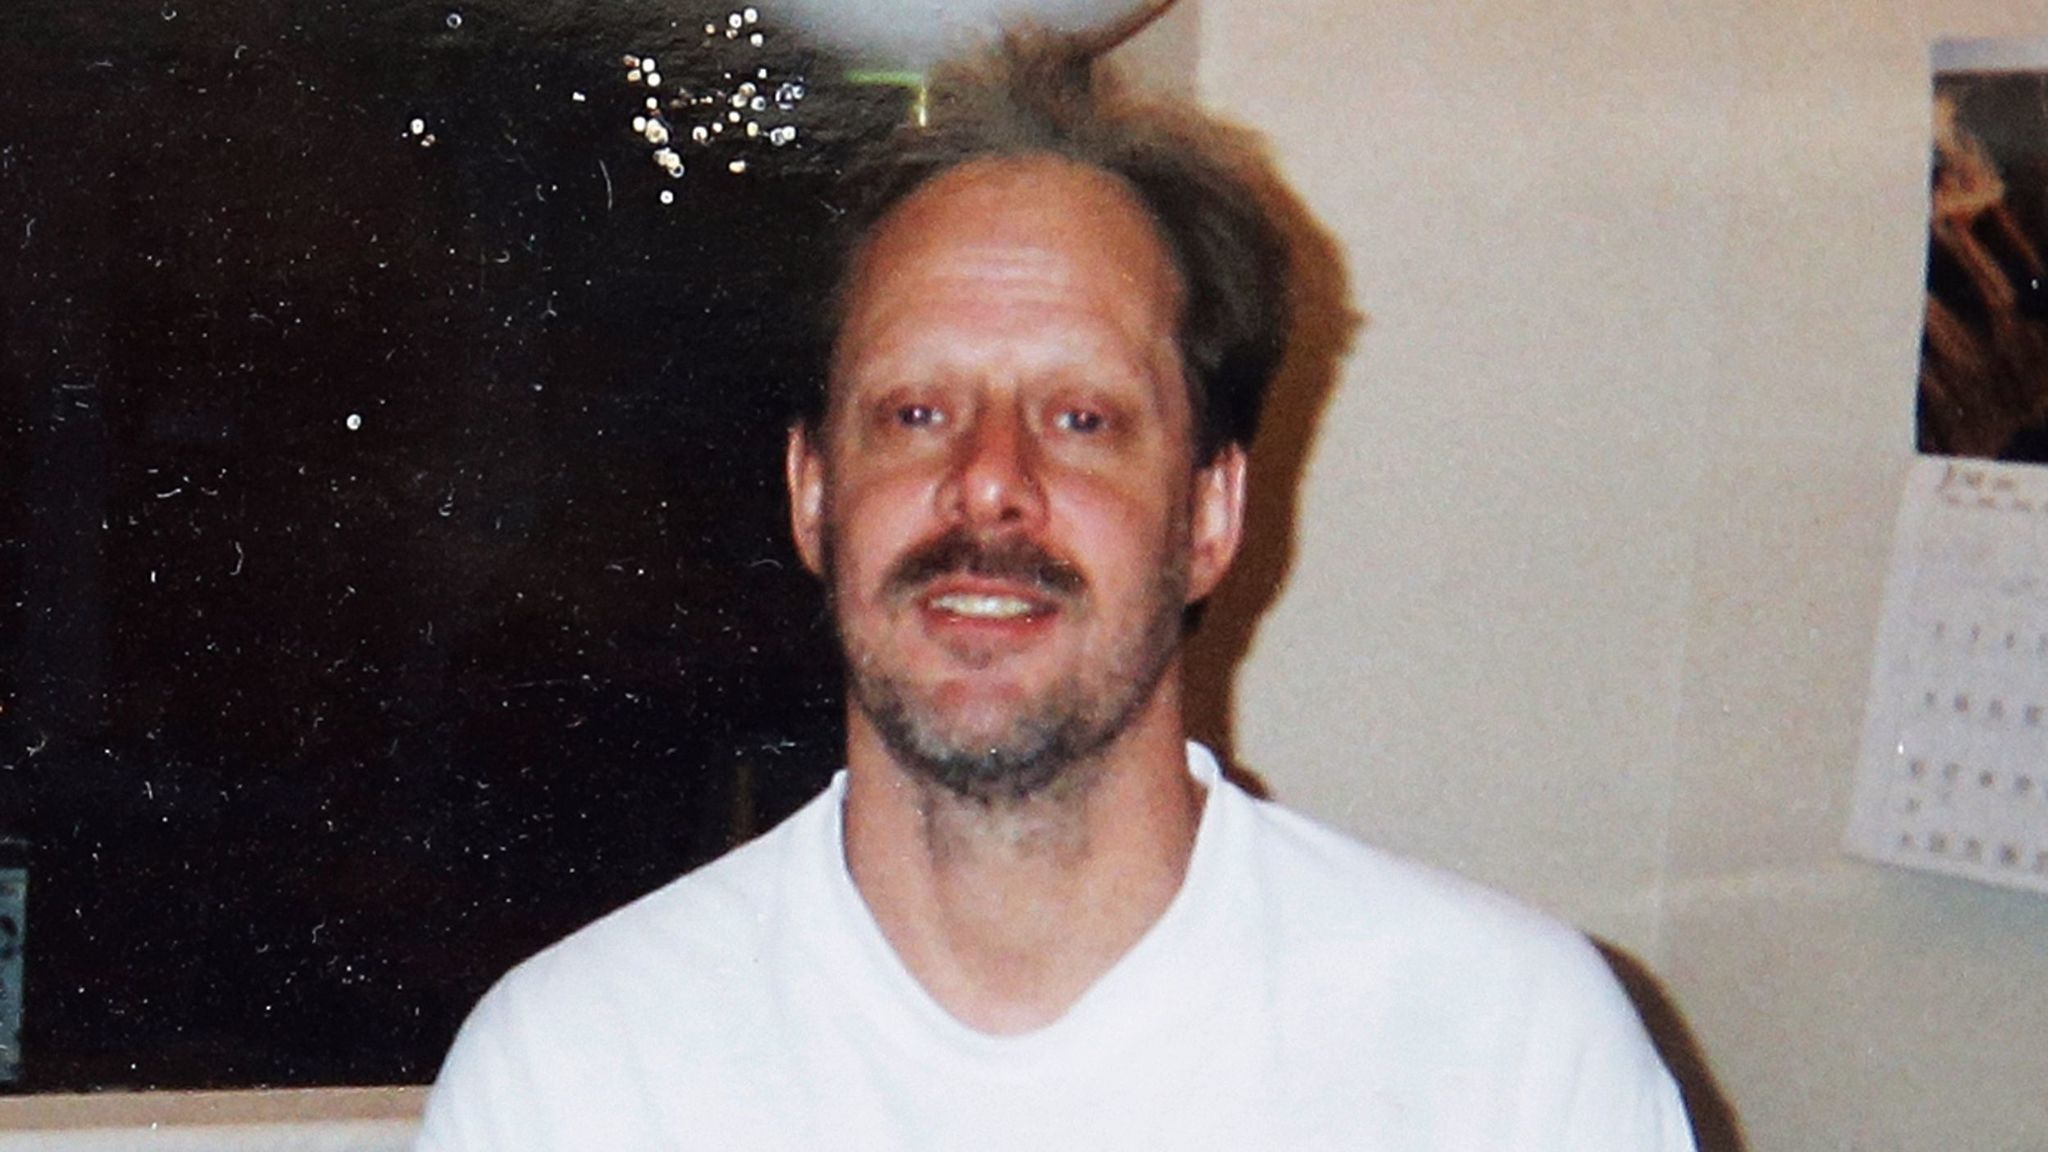 An undated photo shows Stephen Paddock, who opened fire on a Las Vegas country music festival Oct. 1, killing 58 people and wounding nearly 500 others.